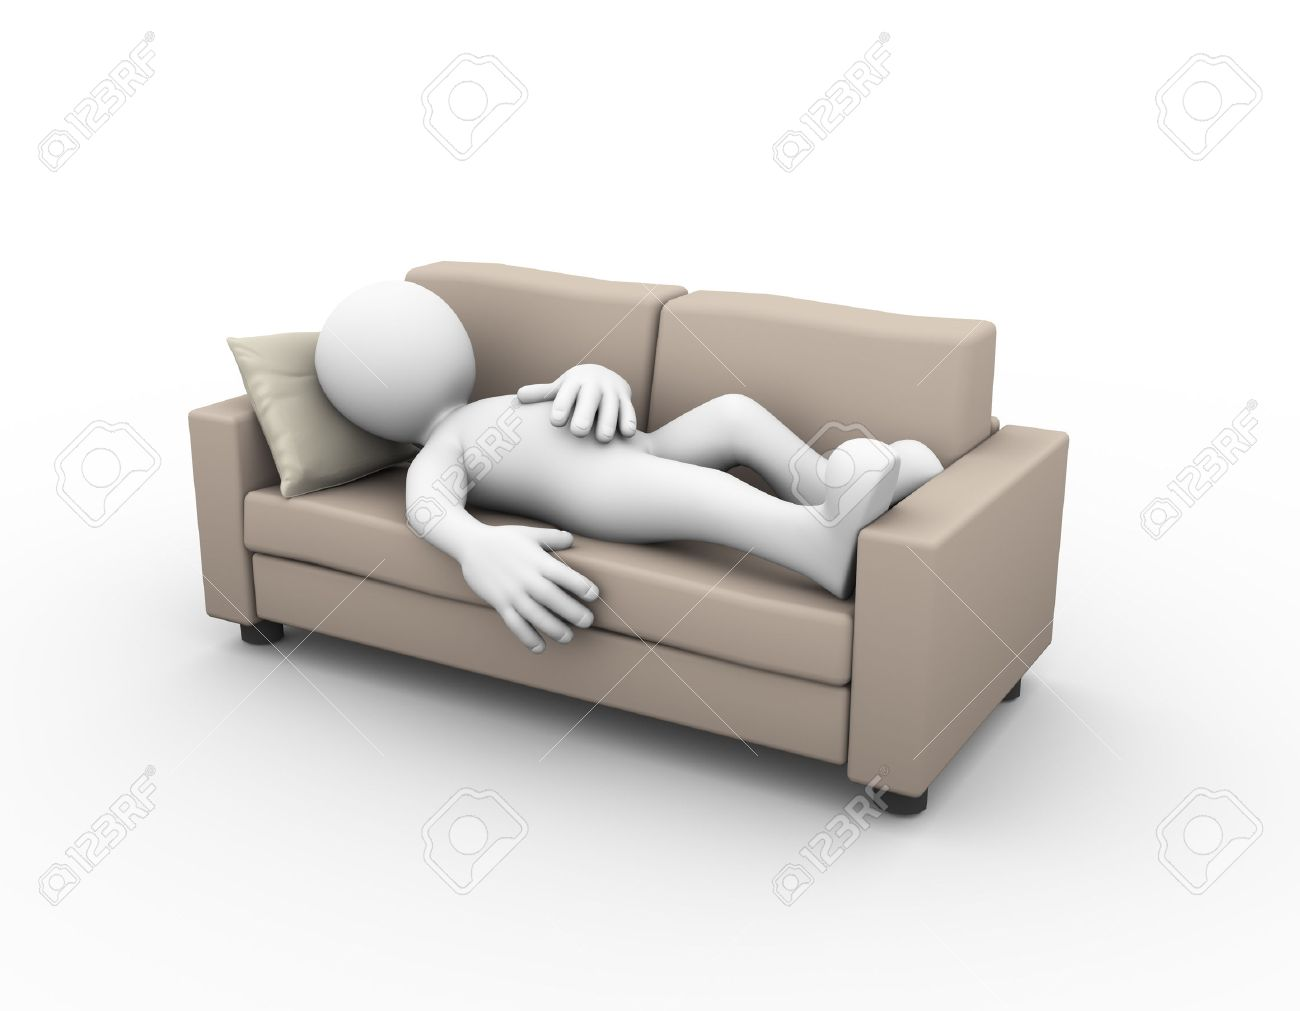 62 567 Sofa Stock Vector Illustration And Royalty Free Sofa Clipart # Muebles Sleeping Dogs